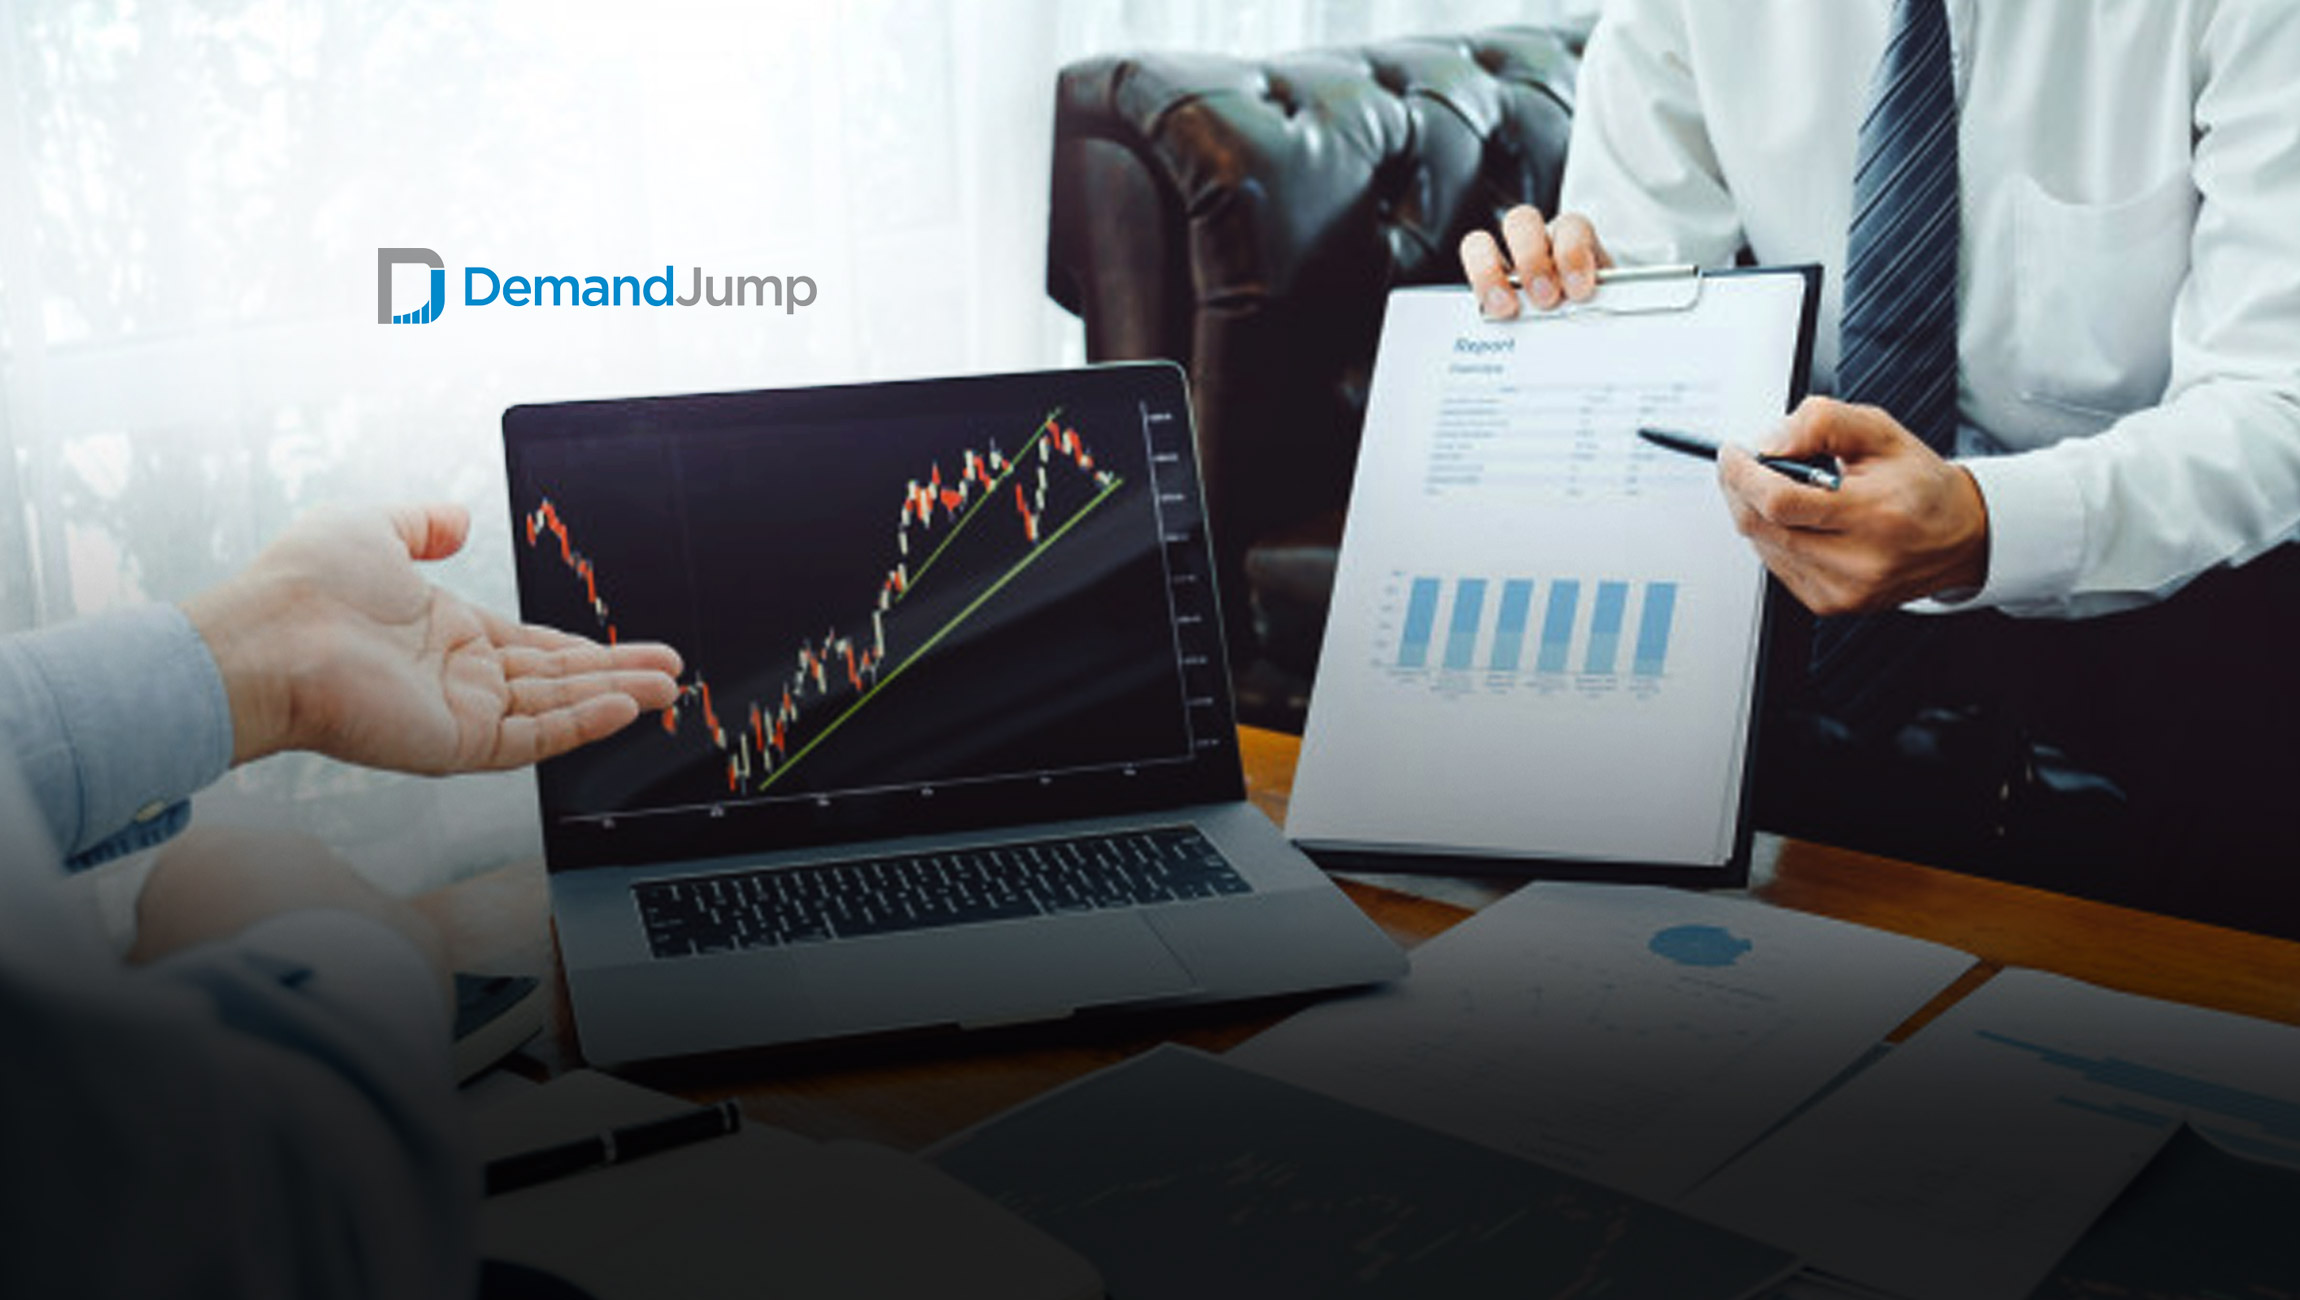 DemandJump Announces Account-Based Attribution for B2B Marketers, Aligning Marketing Actions to Revenue Outcomes